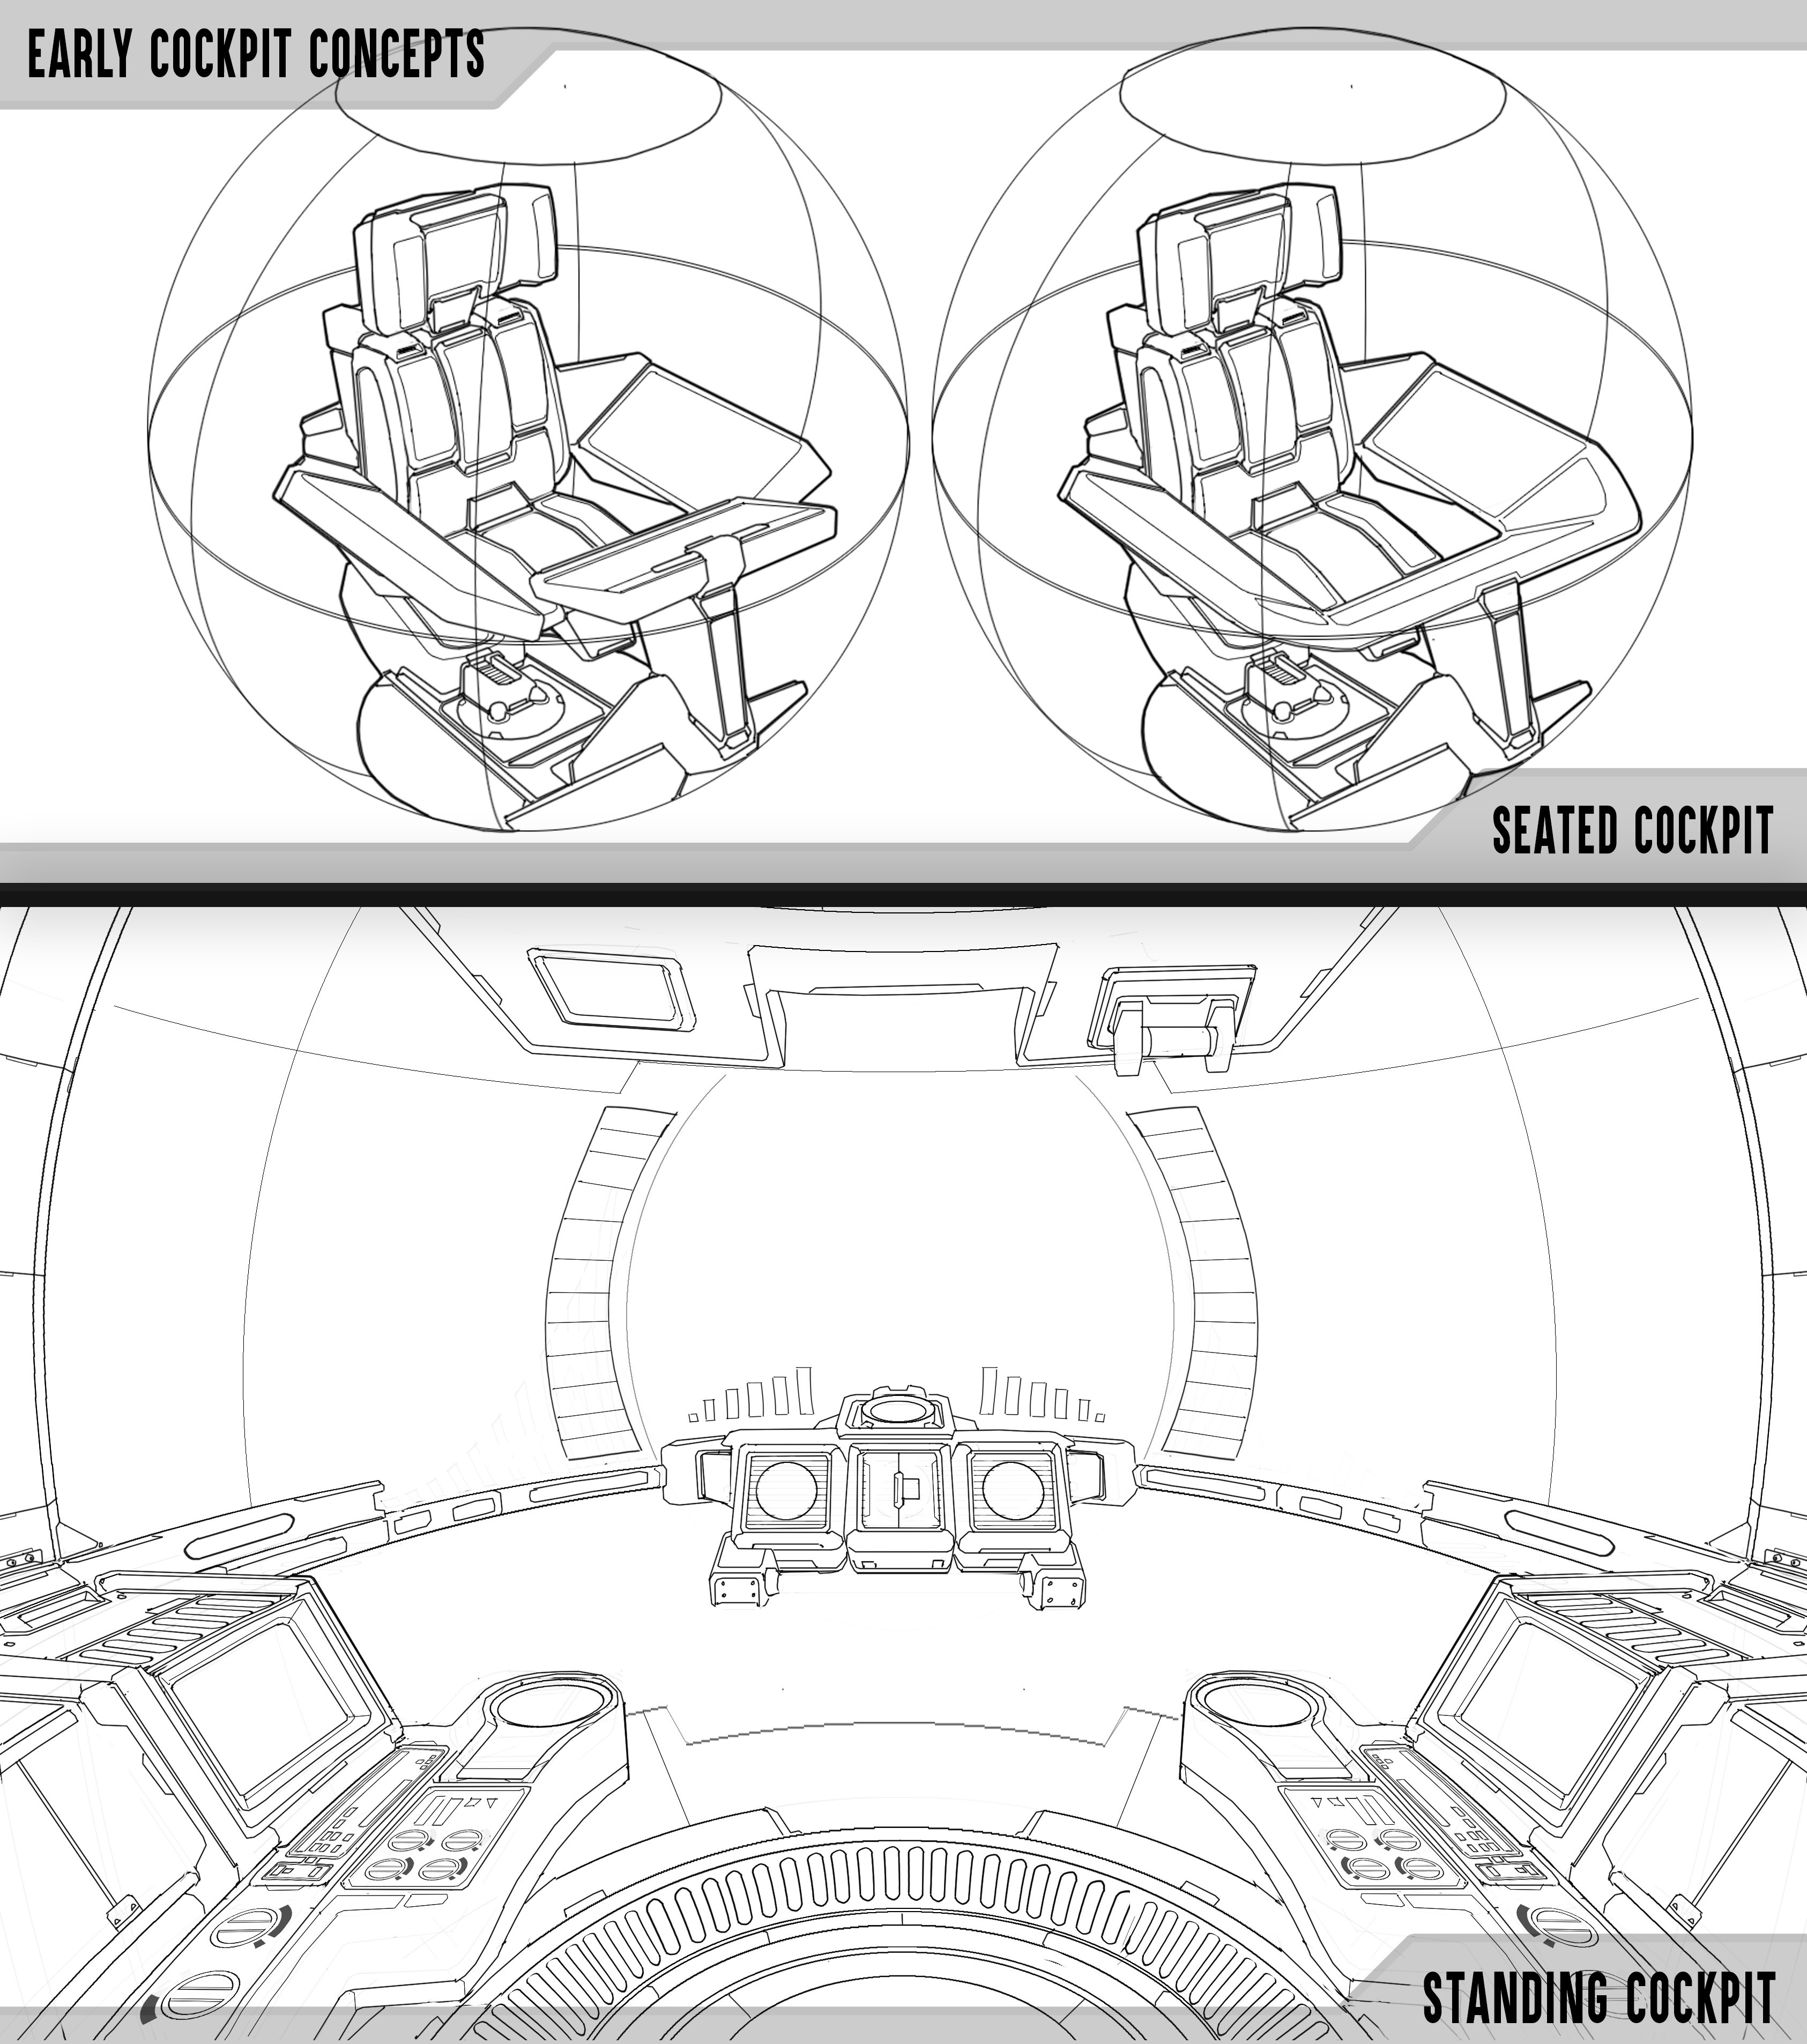 The first iterations of the cockpit designs.